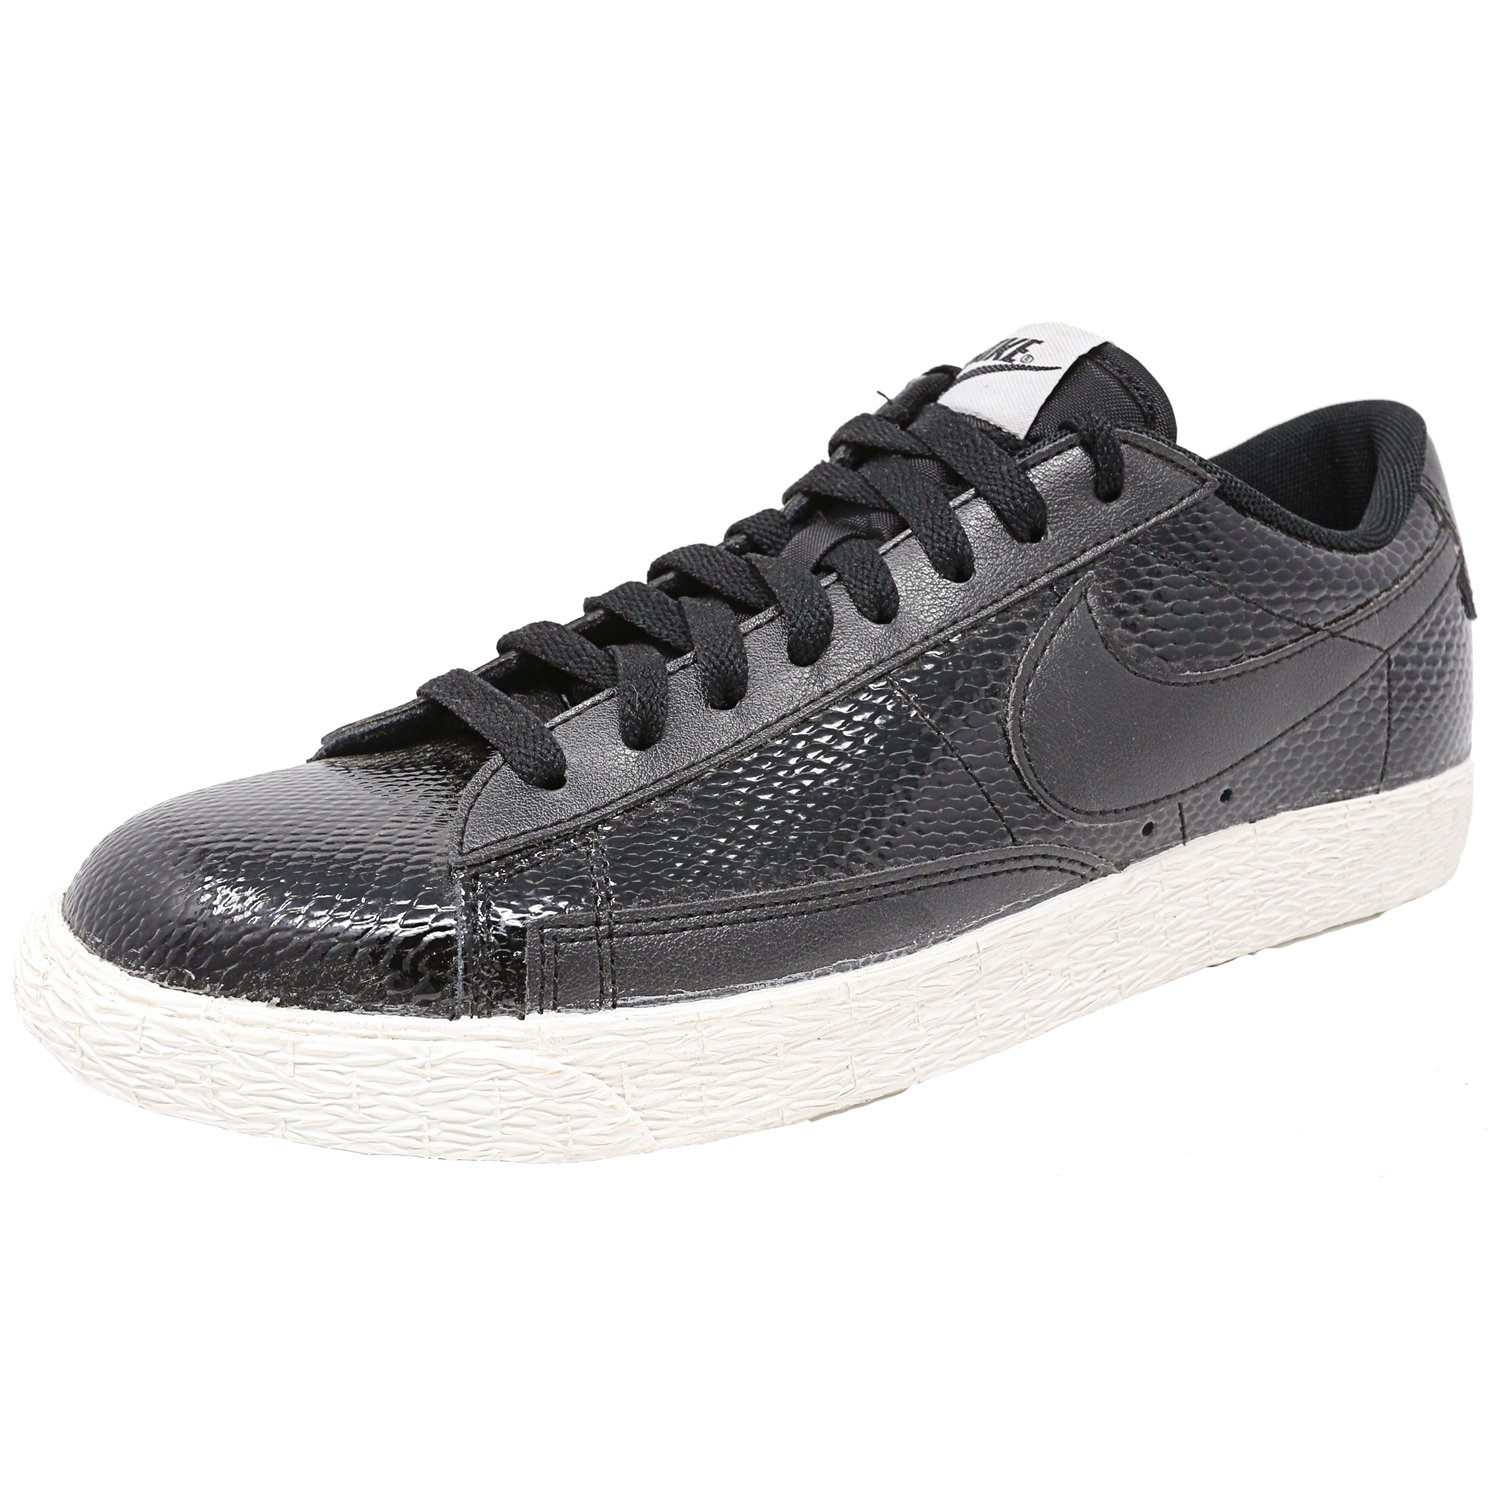 69b29a869483 Nike Women s 685239 002 Ankle-High Leather Fashion Sneaker - 8M ...